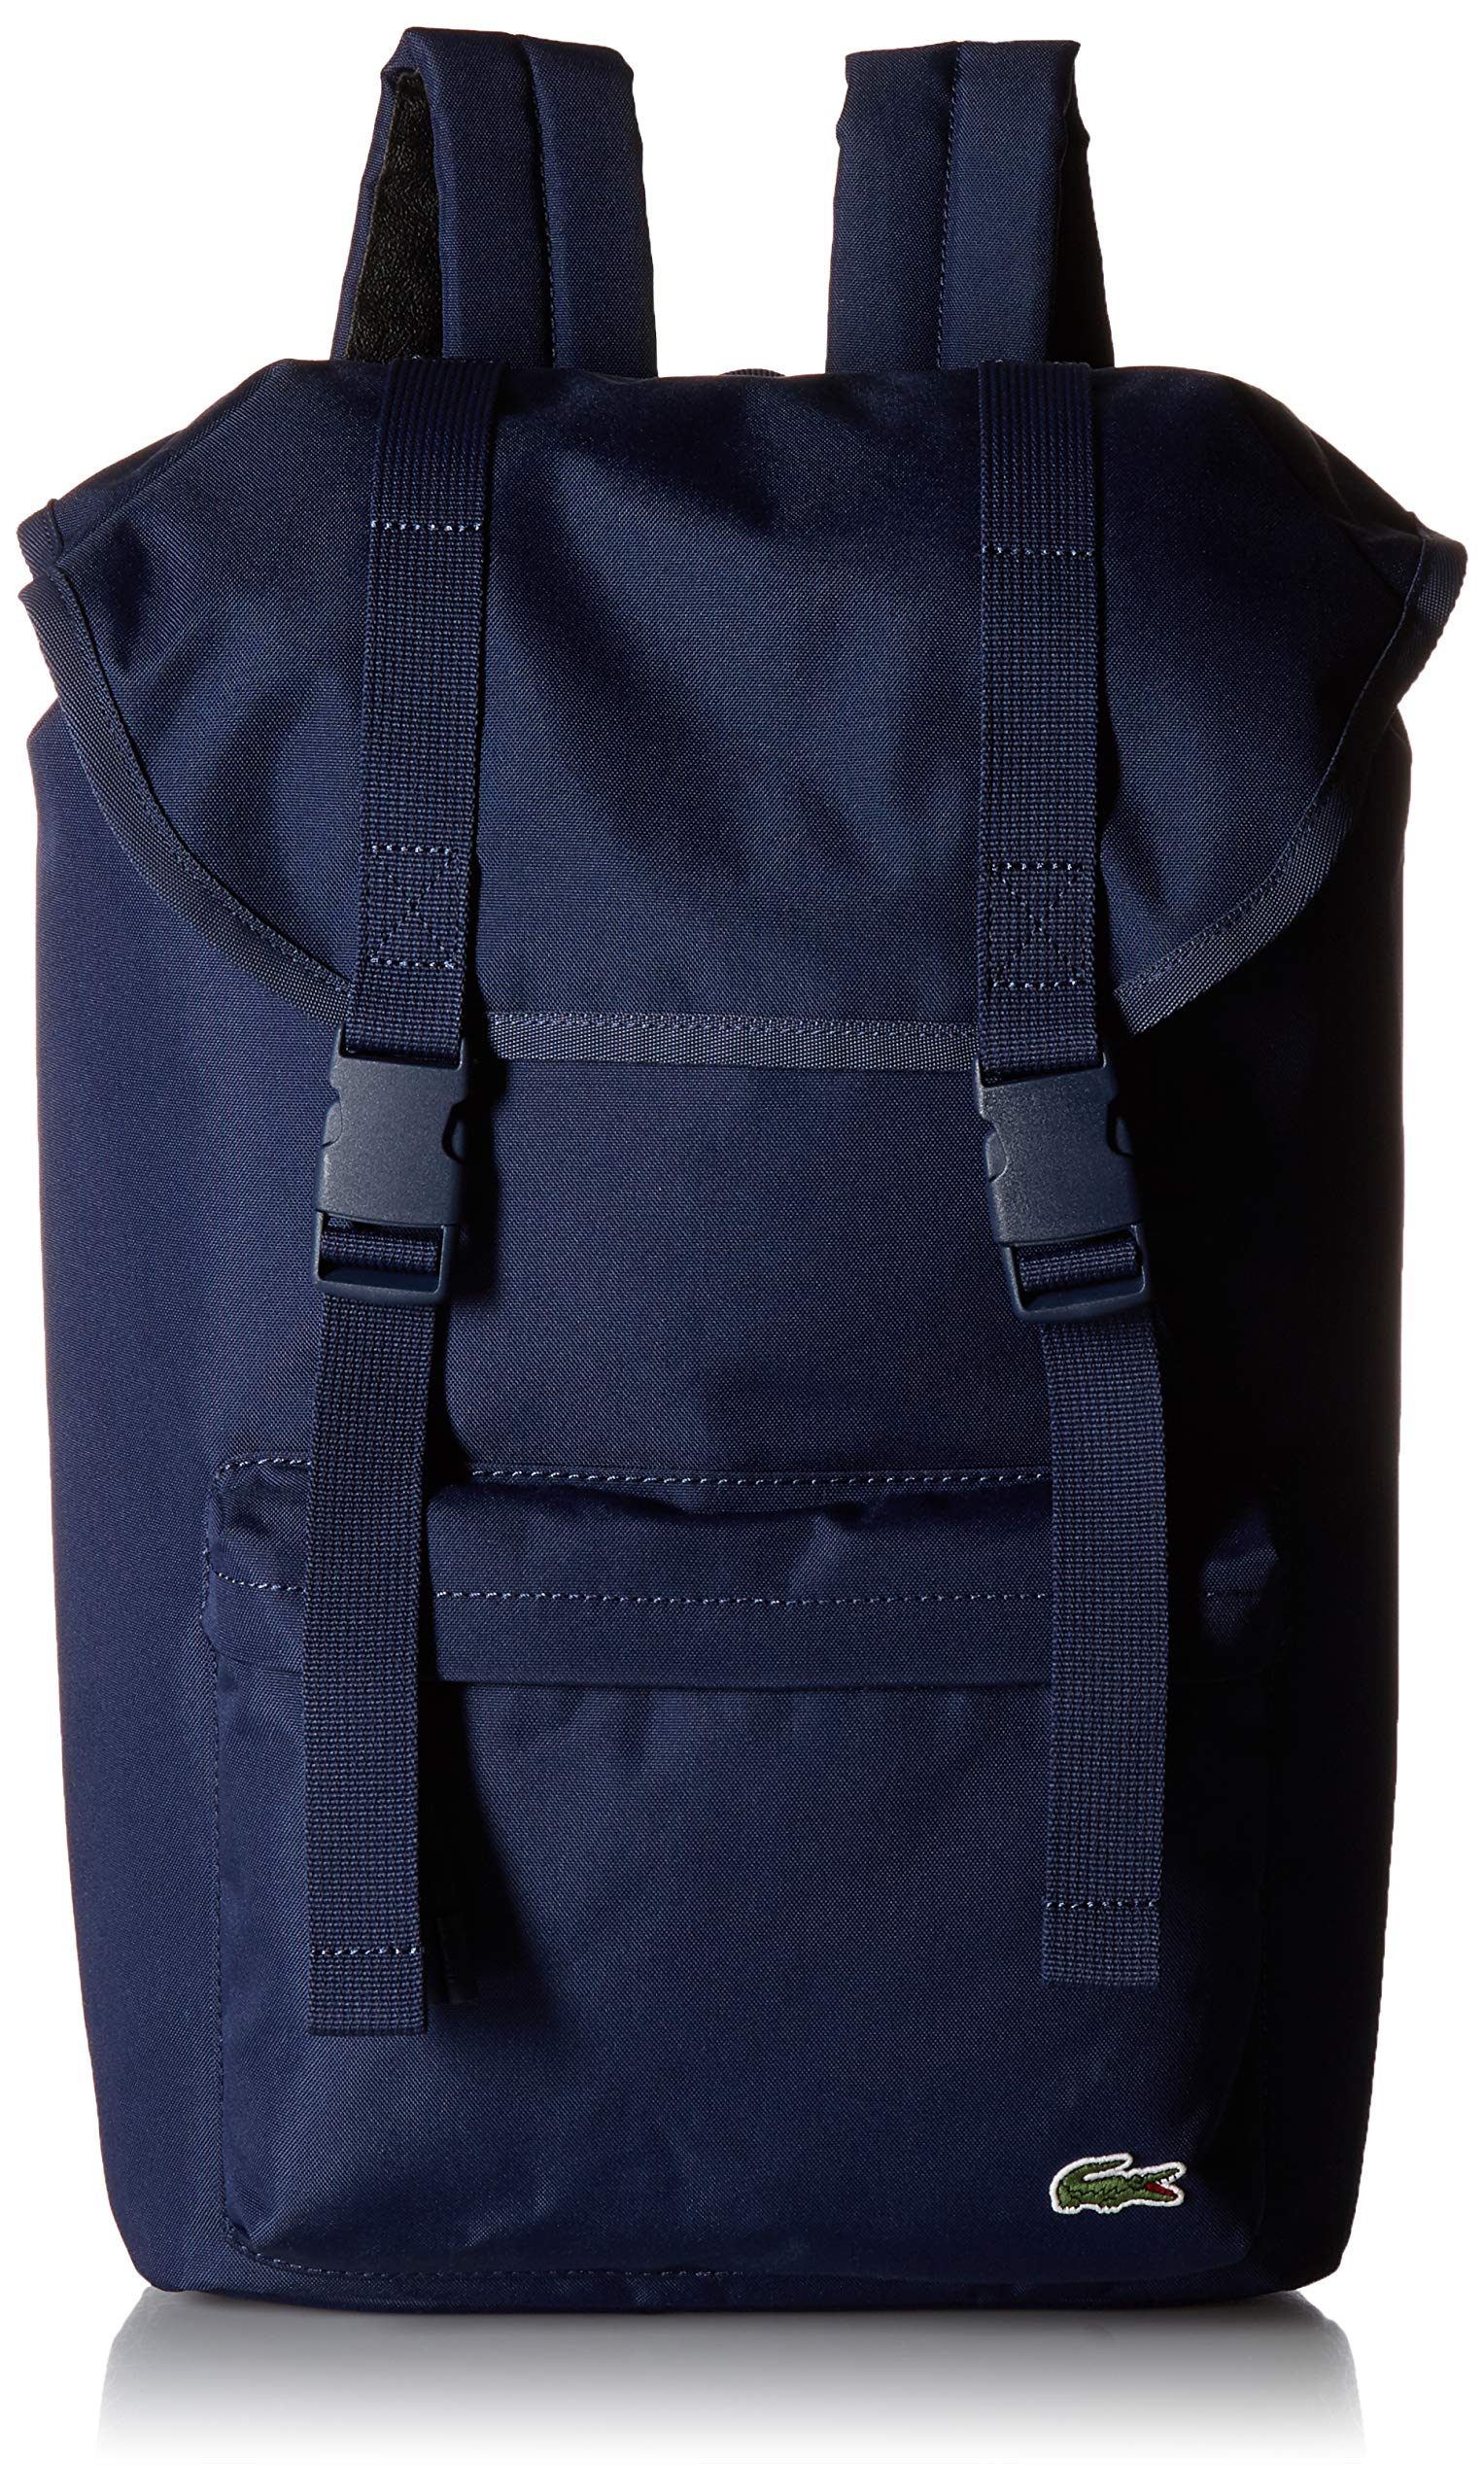 Lacoste Men's Neocroc Flap Backpack, Peacoat, 00 by Lacoste (Image #1)